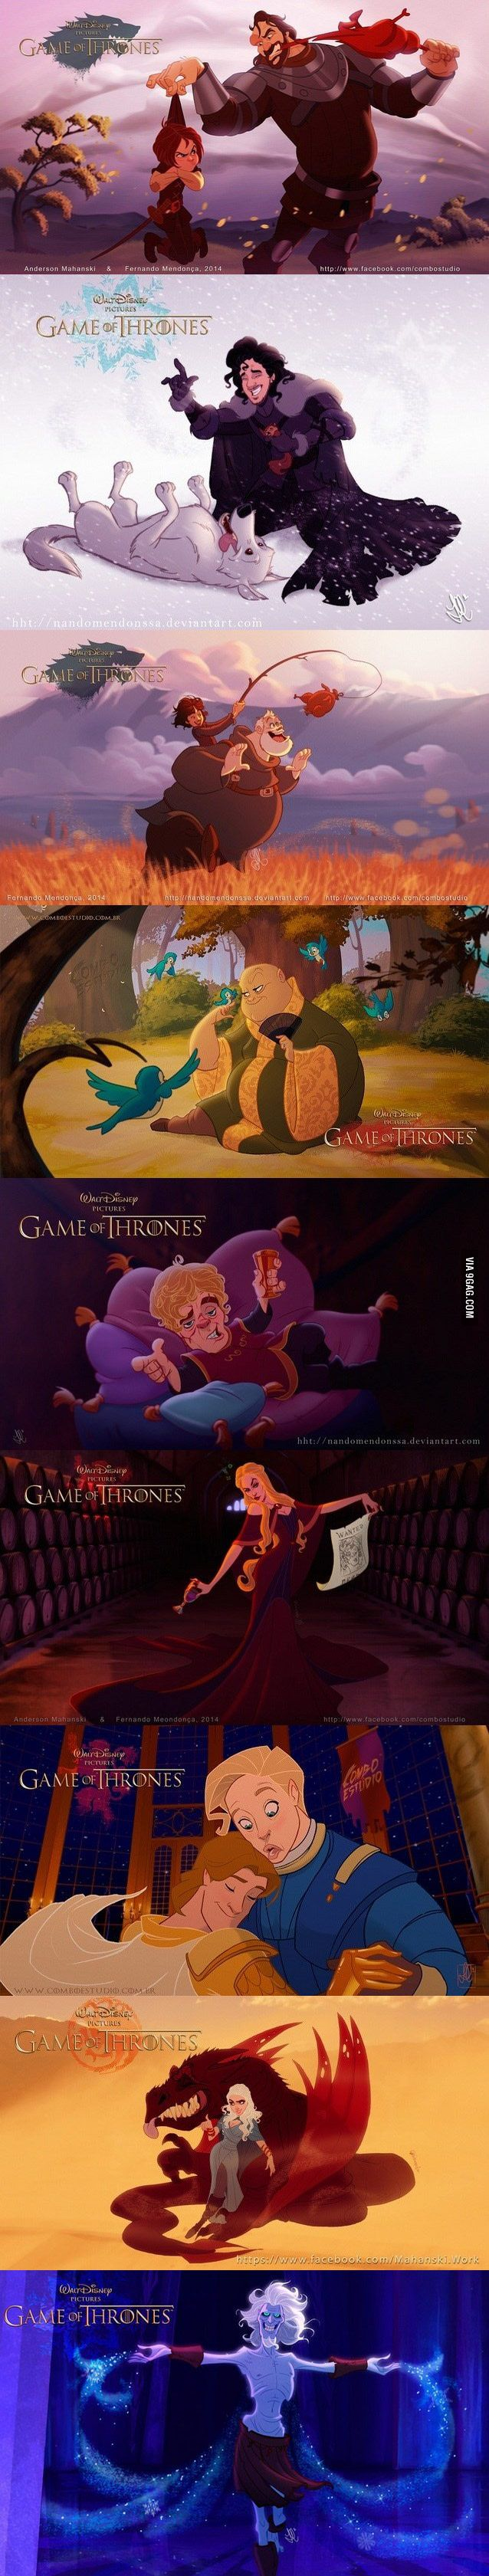 How Game Of Thrones Looks Like If It Was Made By Disney